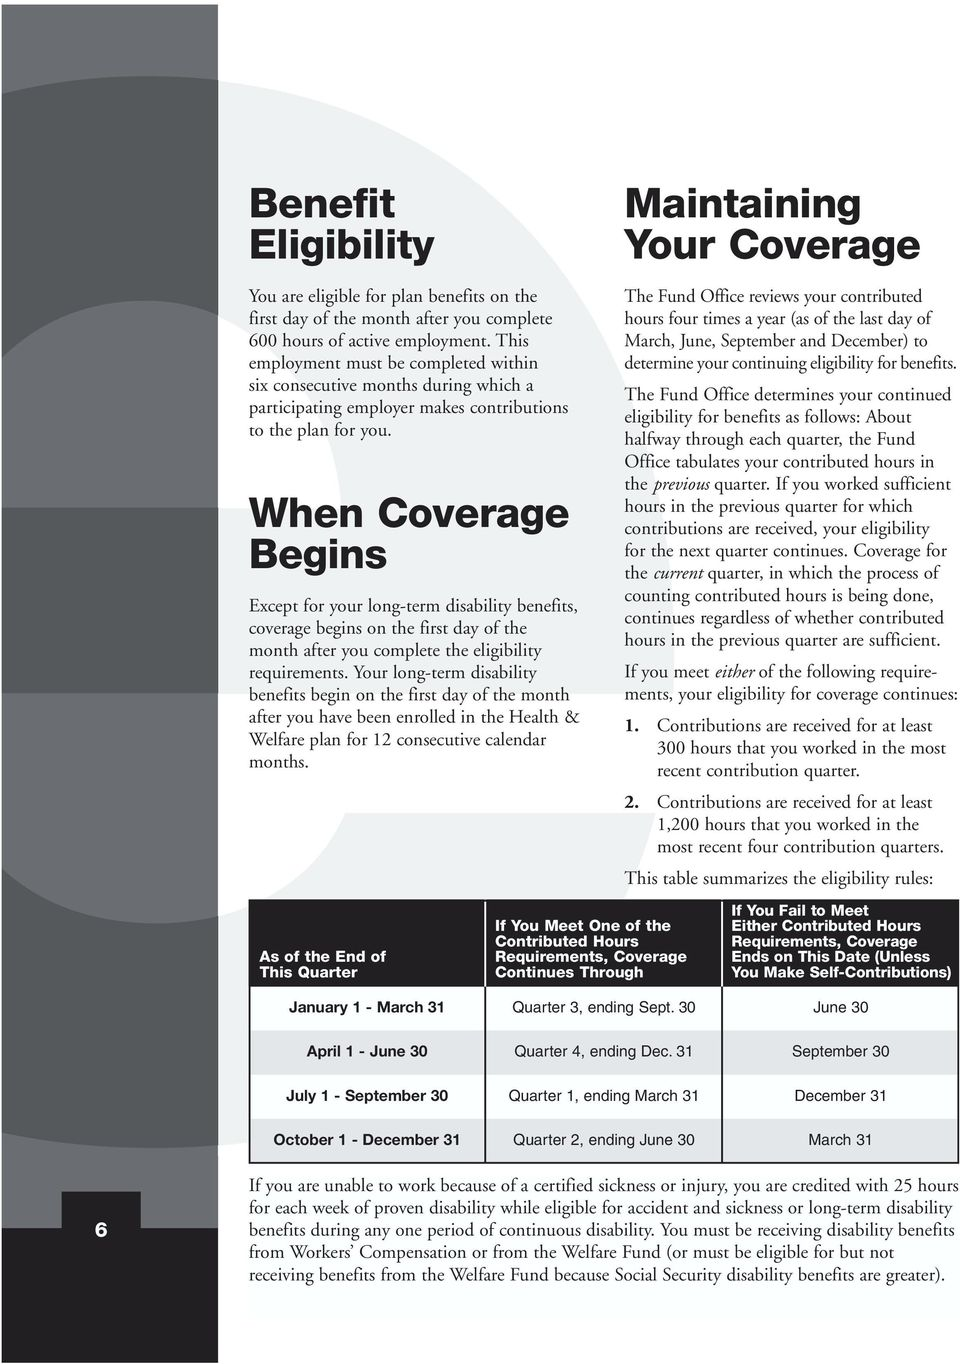 When Coverage Begins Except for your long-term disability benefits, coverage begins on the first day of the month after you complete the eligibility requirements.